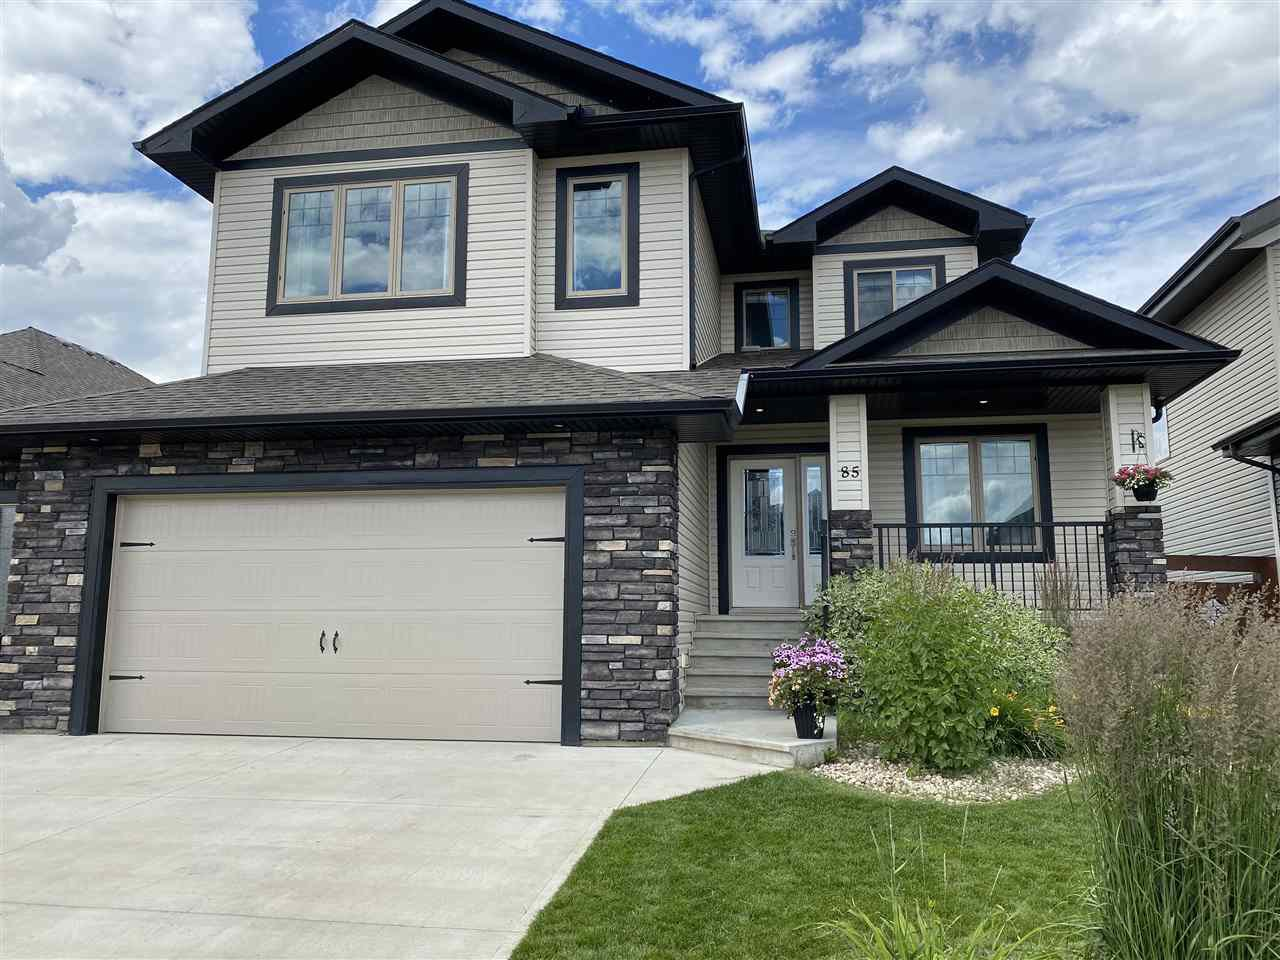 Main Photo: 85 DANFIELD Place: Spruce Grove House for sale : MLS®# E4206587